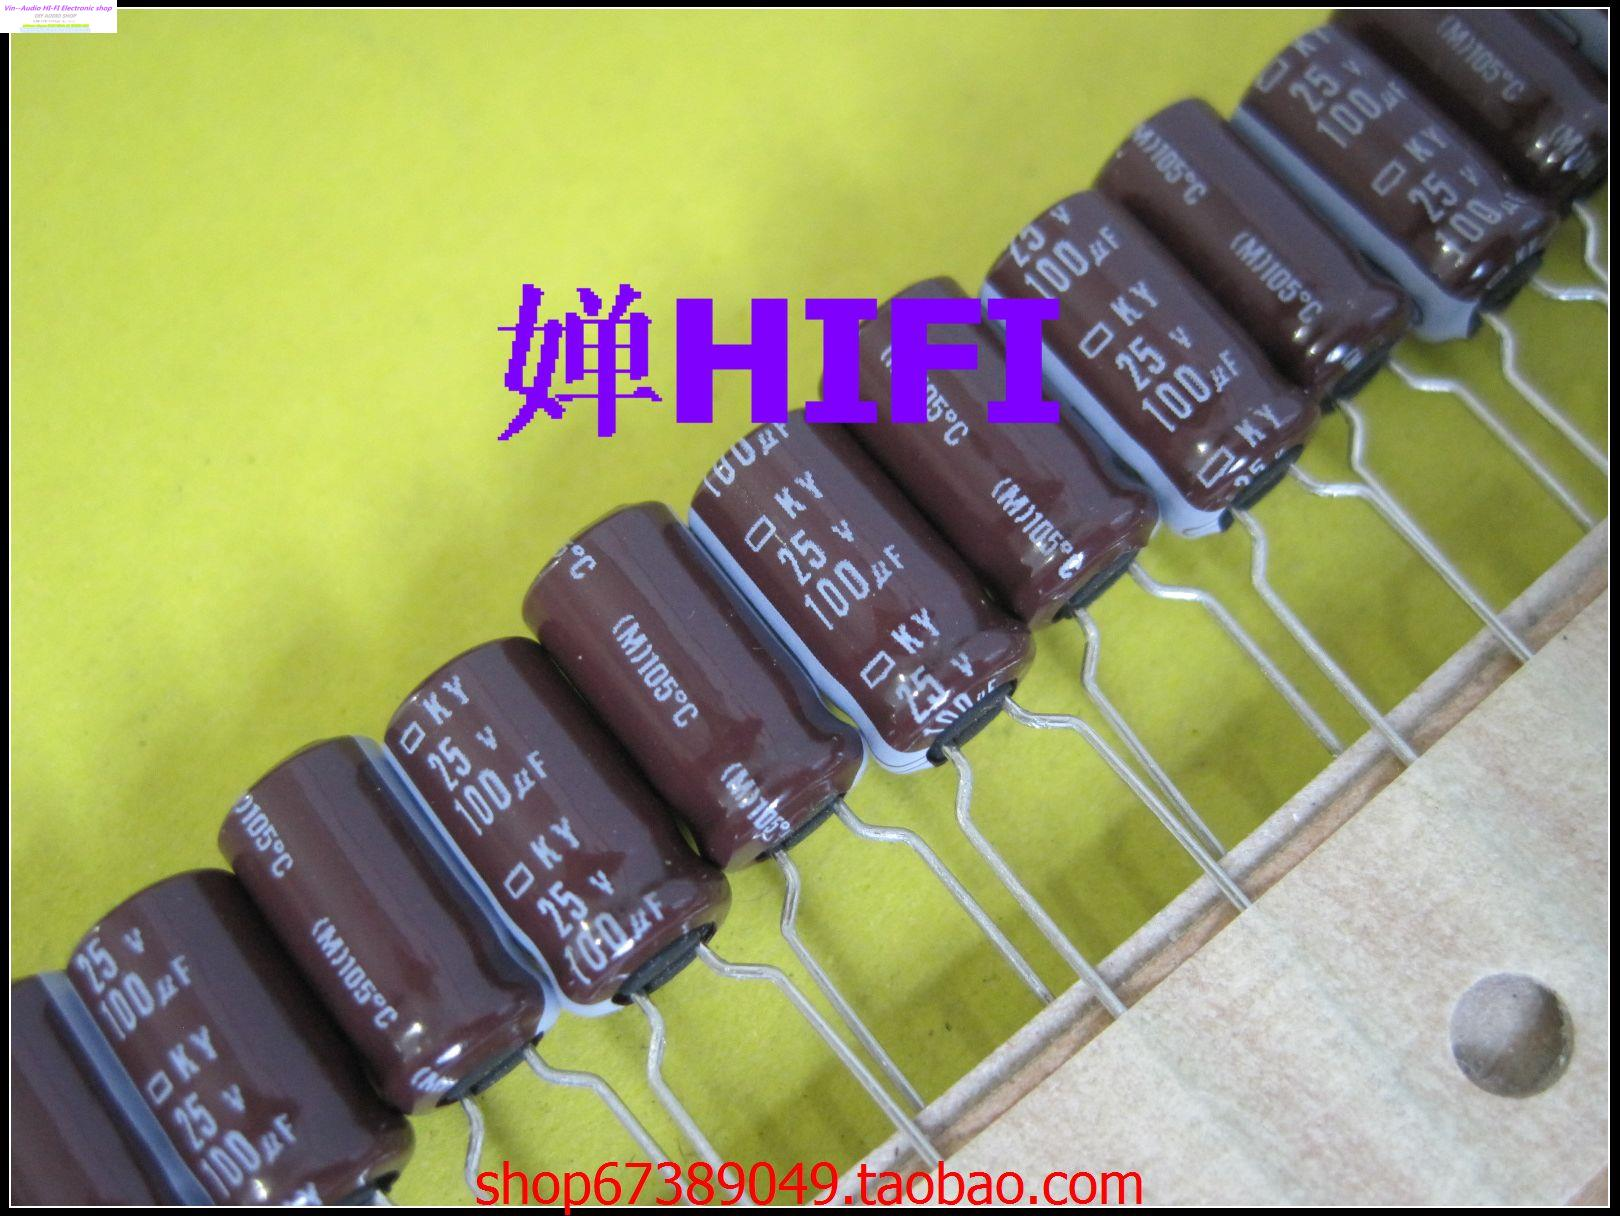 Здесь можно купить  200PCS NCC NIPPON Japan NIPPON genuine Black Edition electrolytic capacitors 25v100uf 6.3x11 KY [ 10 ] FREE SHIPPING  Электронные компоненты и материалы